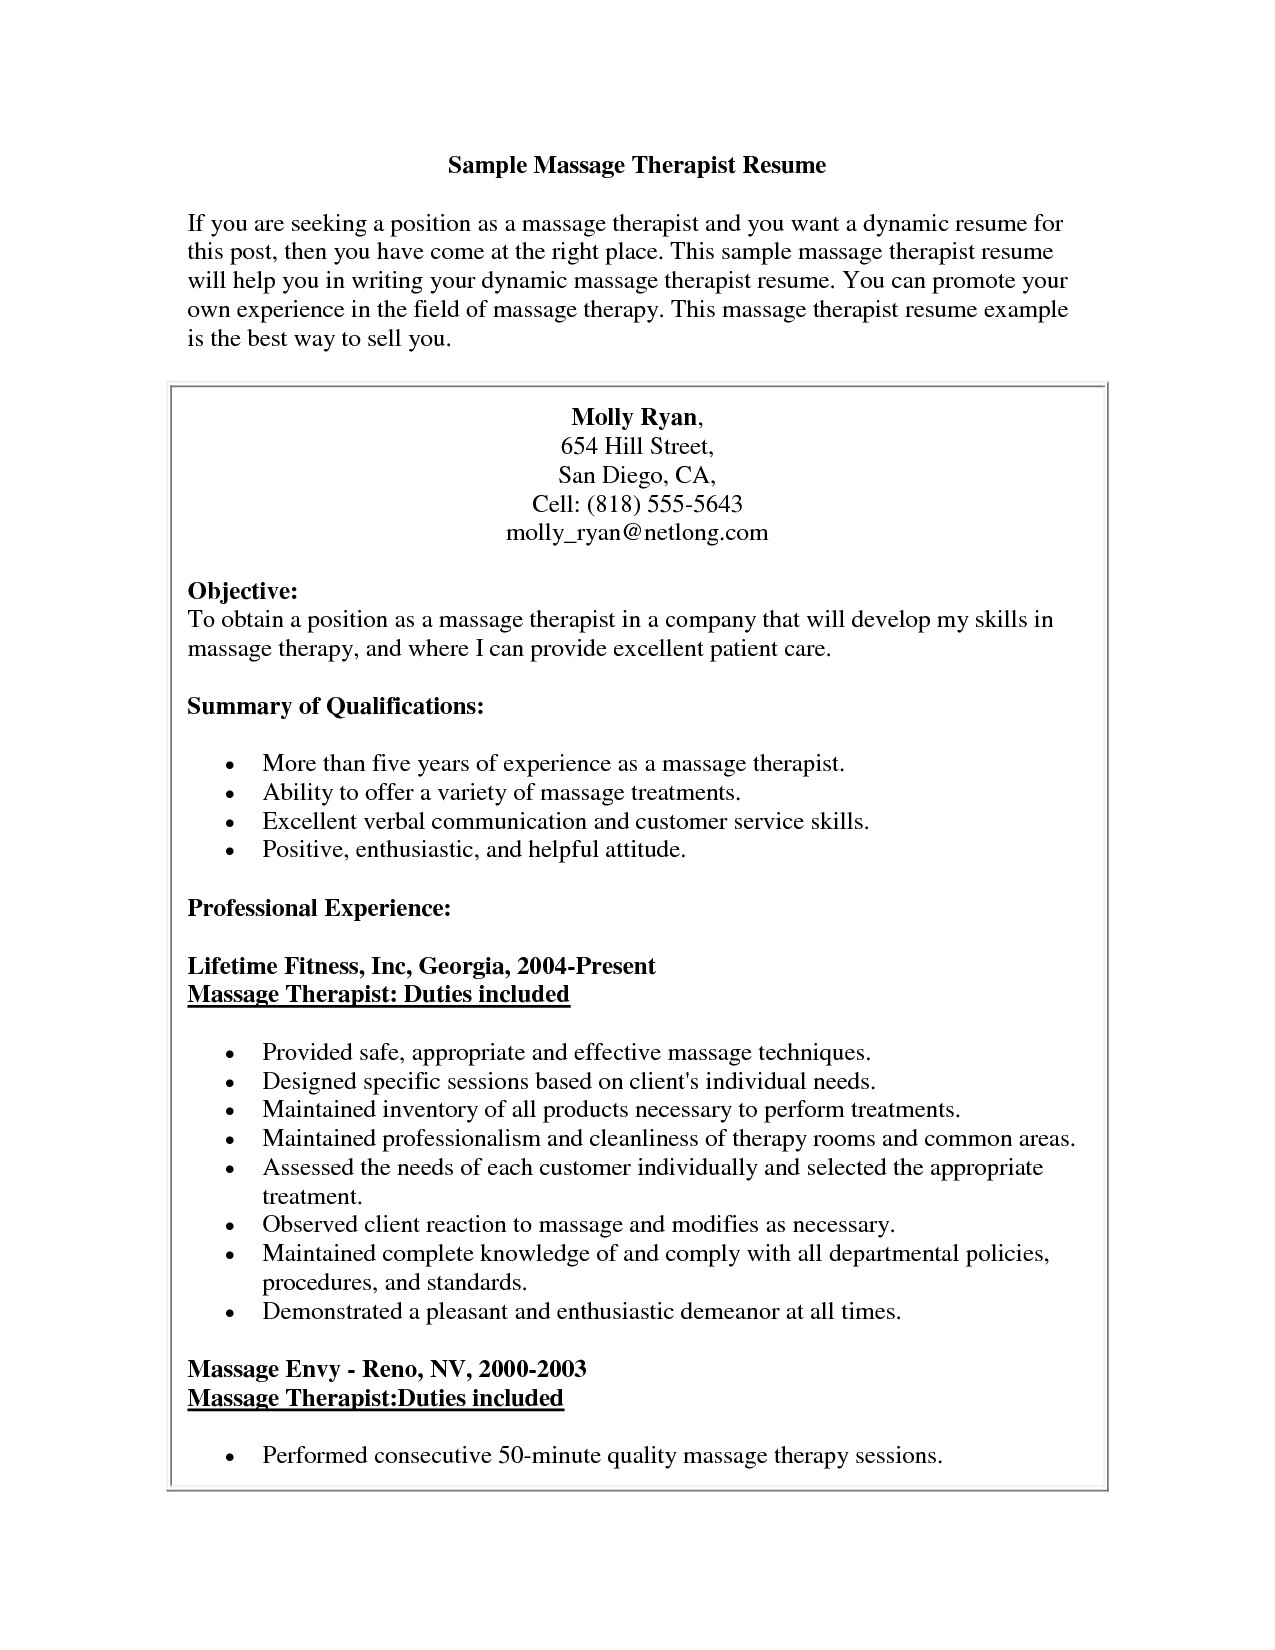 Massage therapy Resume Template - Massage therapist Resume Example Elegant Massage therapist Resume